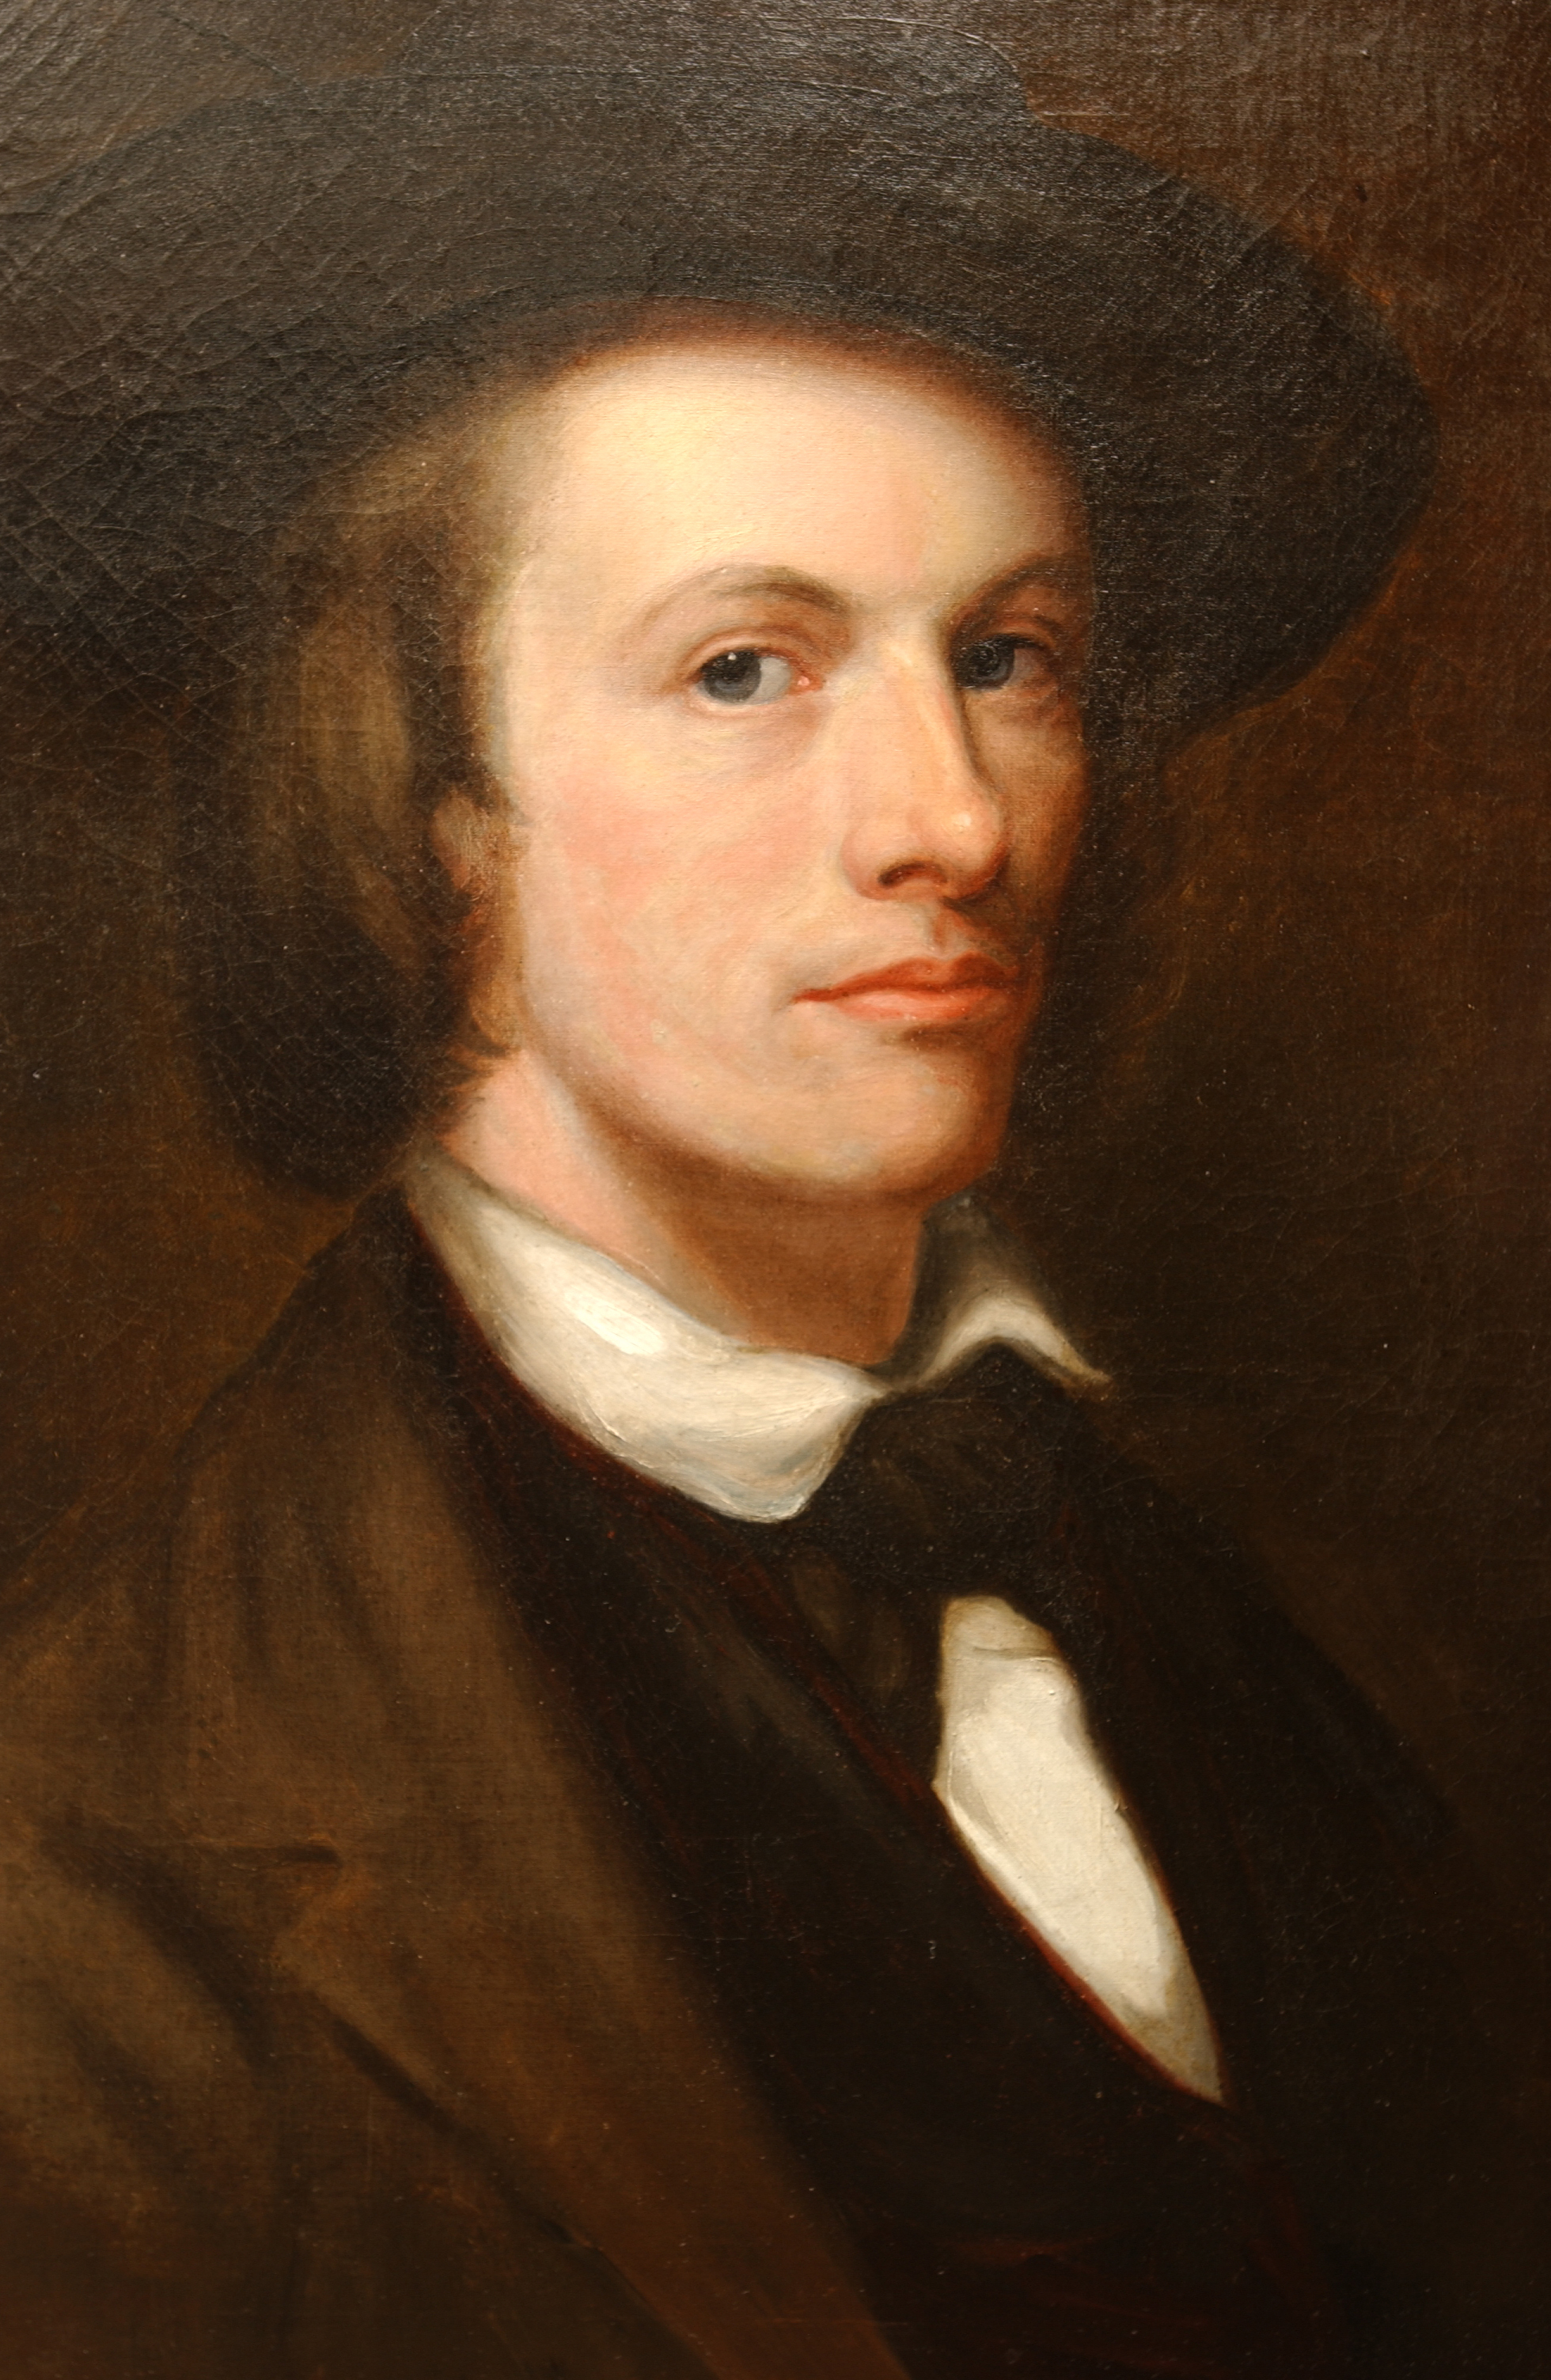 Painted portrait of Edward Washbourne with him looking at viewer with serious face, wearing black suit and hat